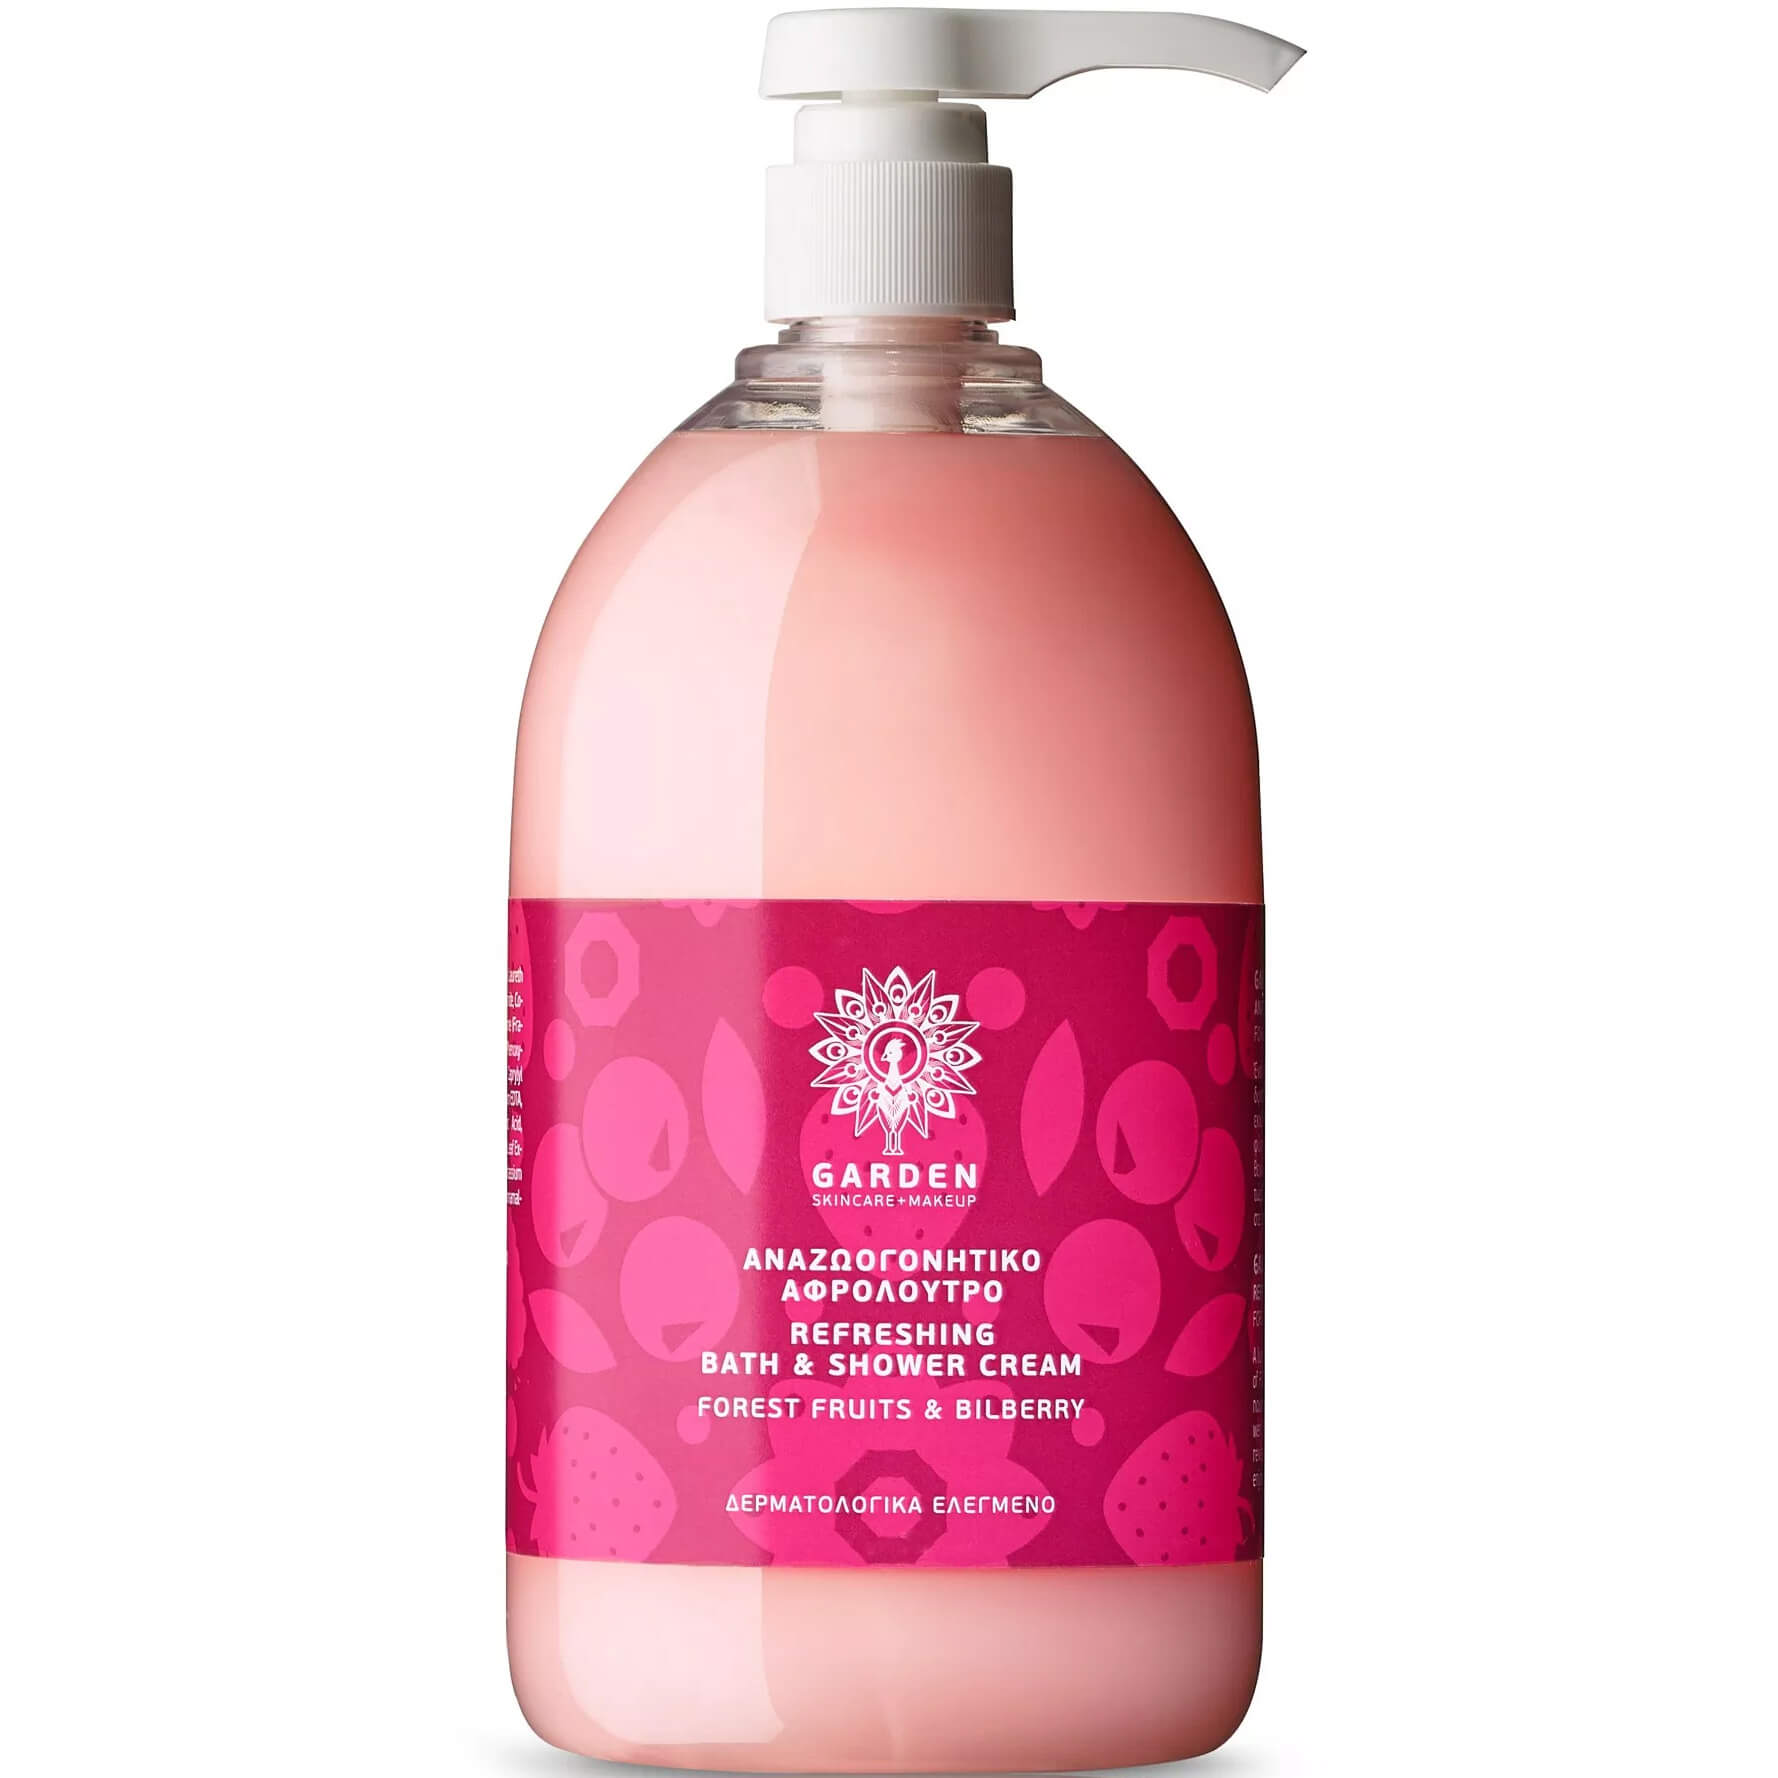 Garden of Panthenols Refreshing Bath & Shower Cream Forest Fruits & Bilberry Αναζωογονητικό Αρωματικό Αφρόλουτρο 1Lt